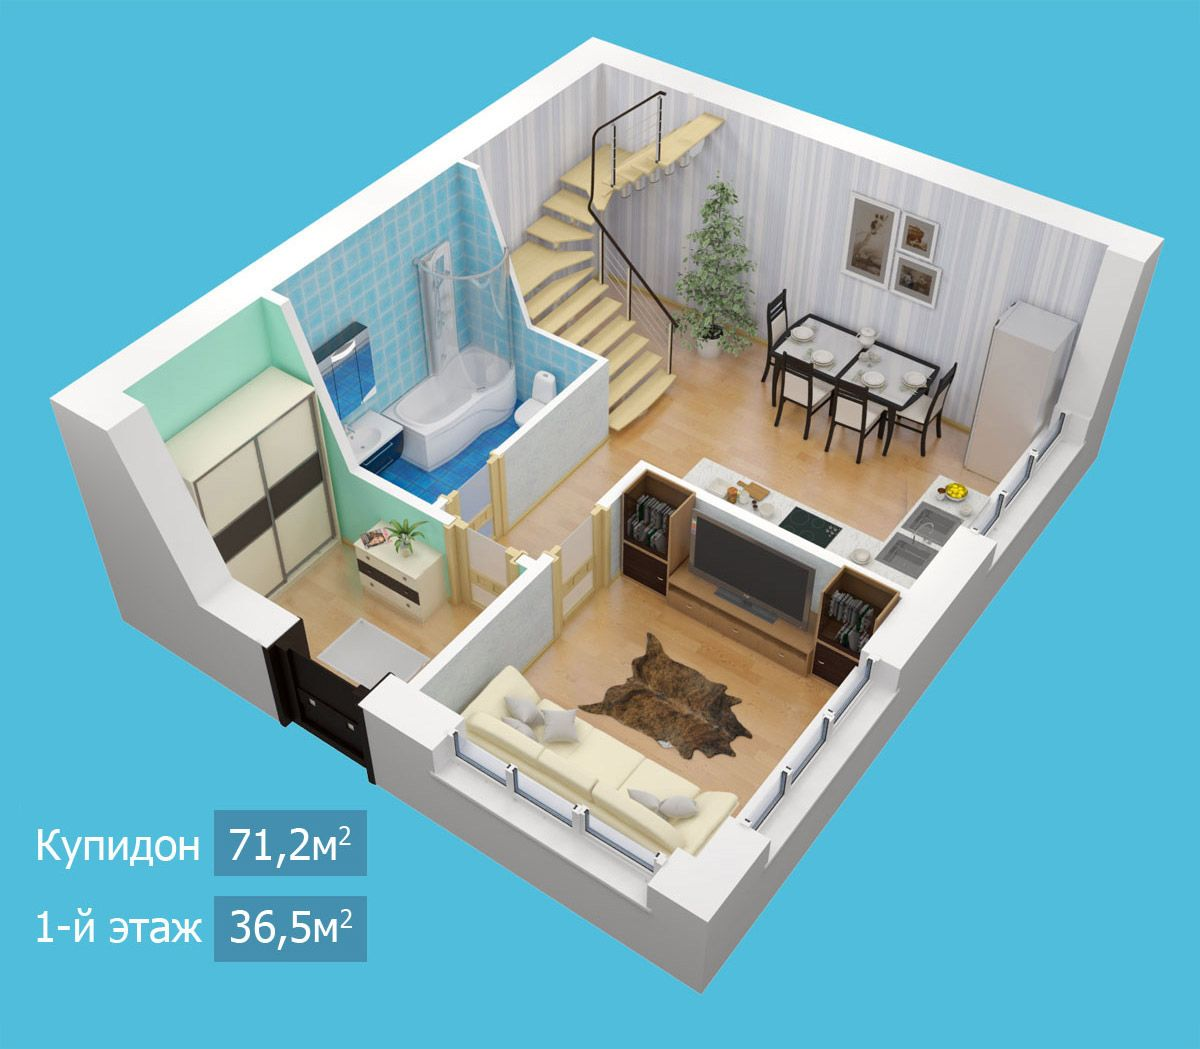 From Http Snvproject Ru Kupidon Htm House Layout Plans House Layouts House Design